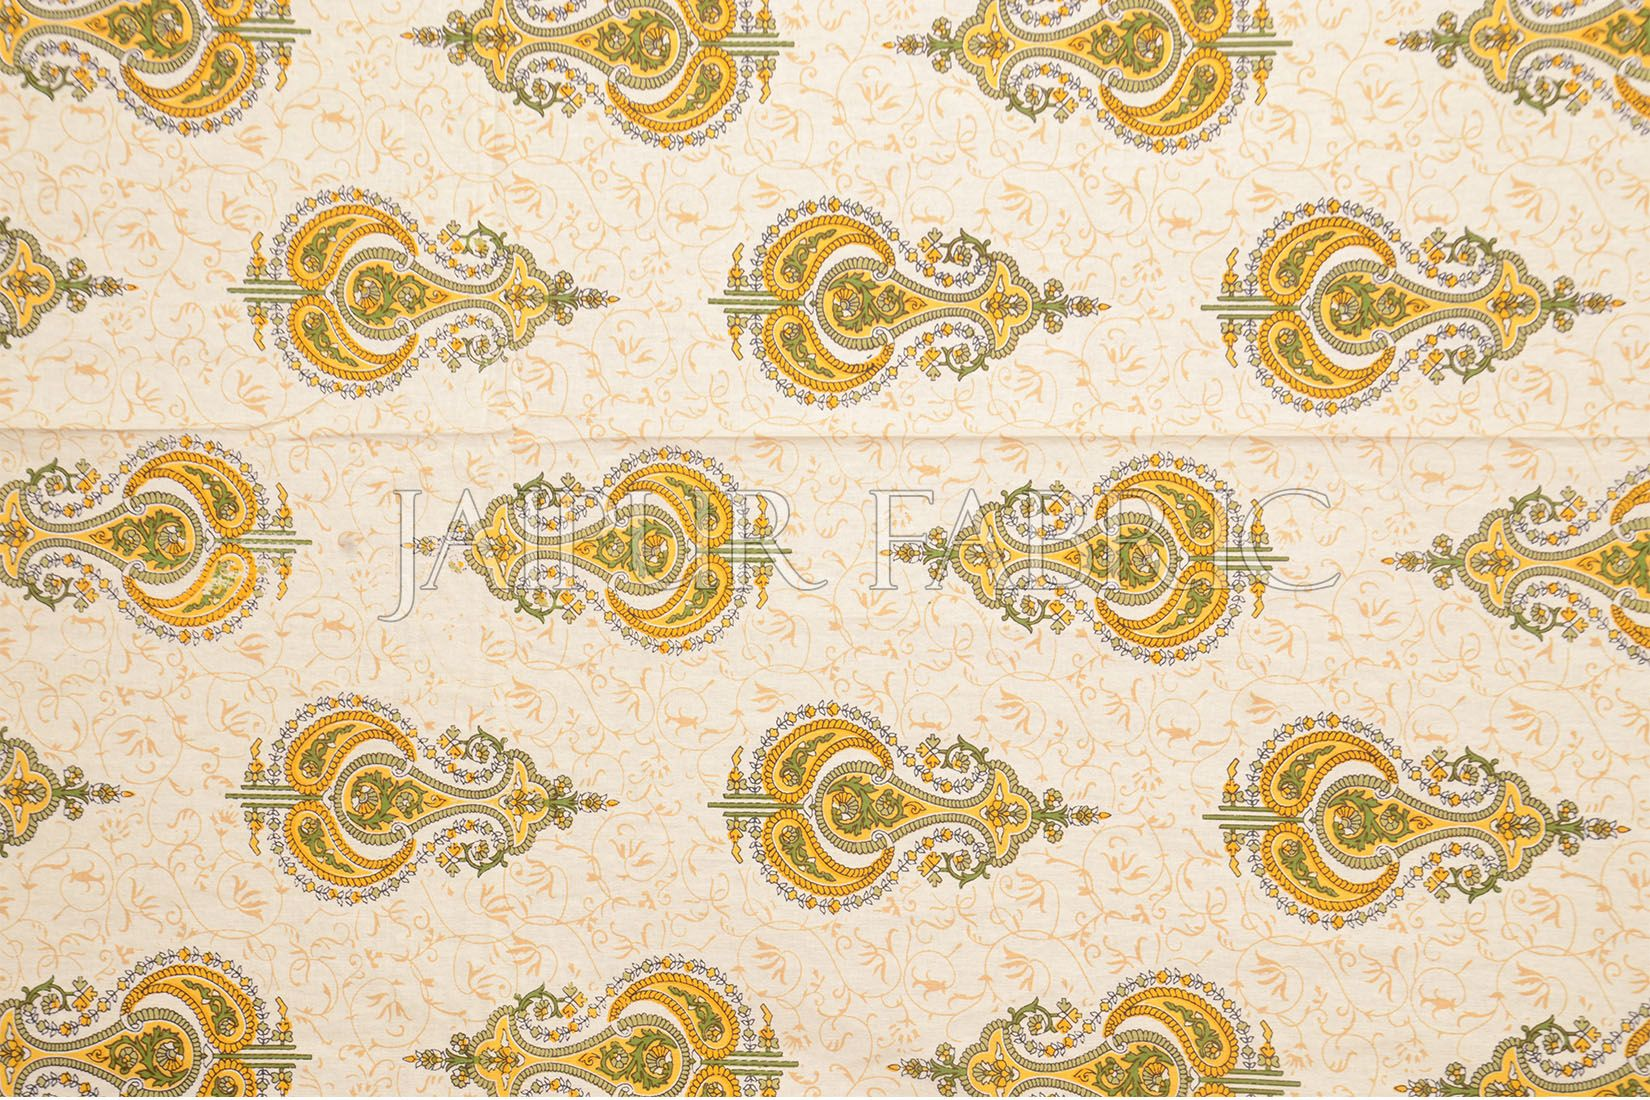 Beige Jaipuri Keri Printed Cotton Single Bed Sheet